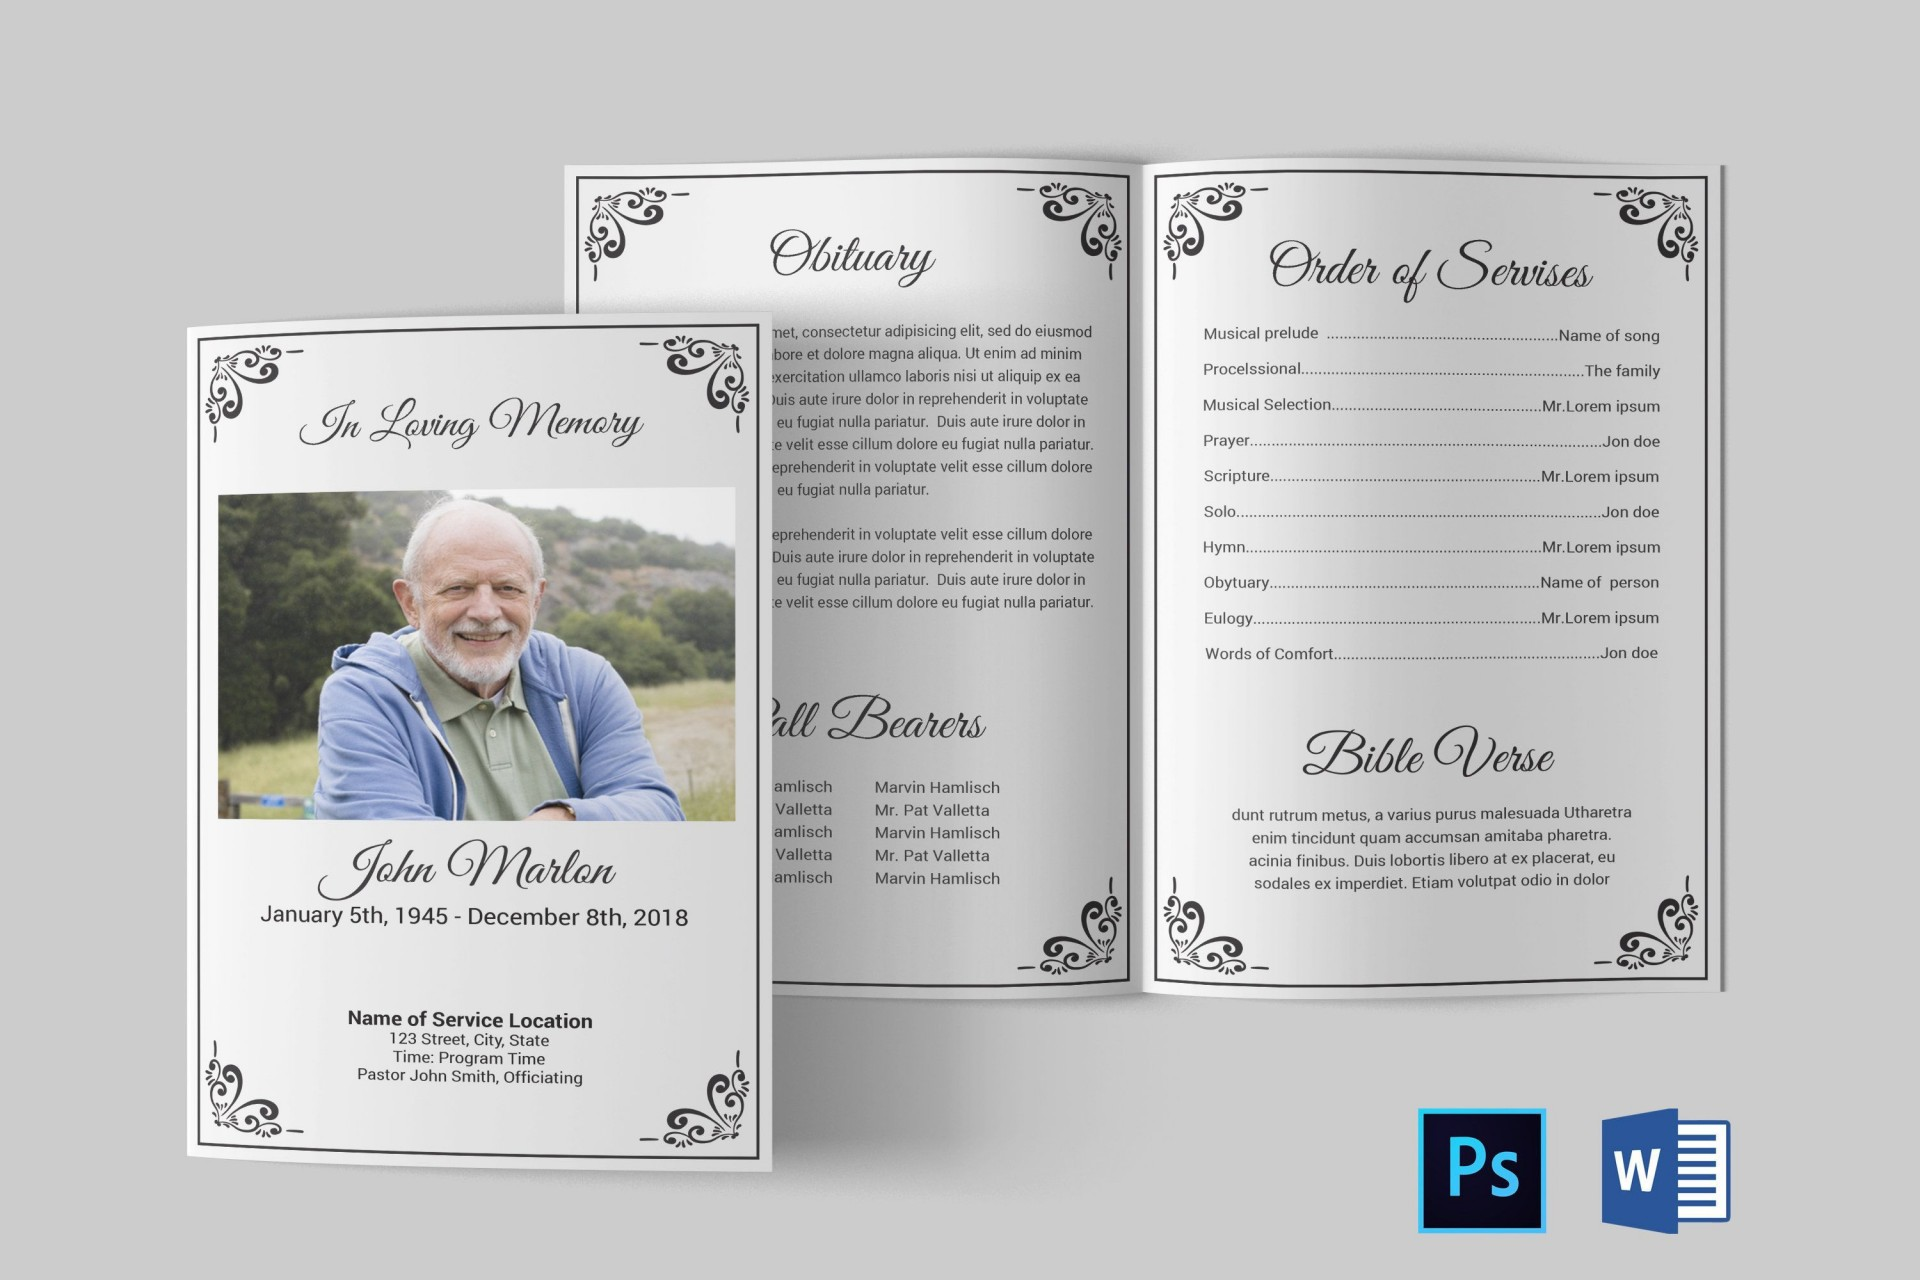 002 Fascinating Funeral Program Template Free Inspiration  Blank Microsoft Word Layout Editable Uk1920